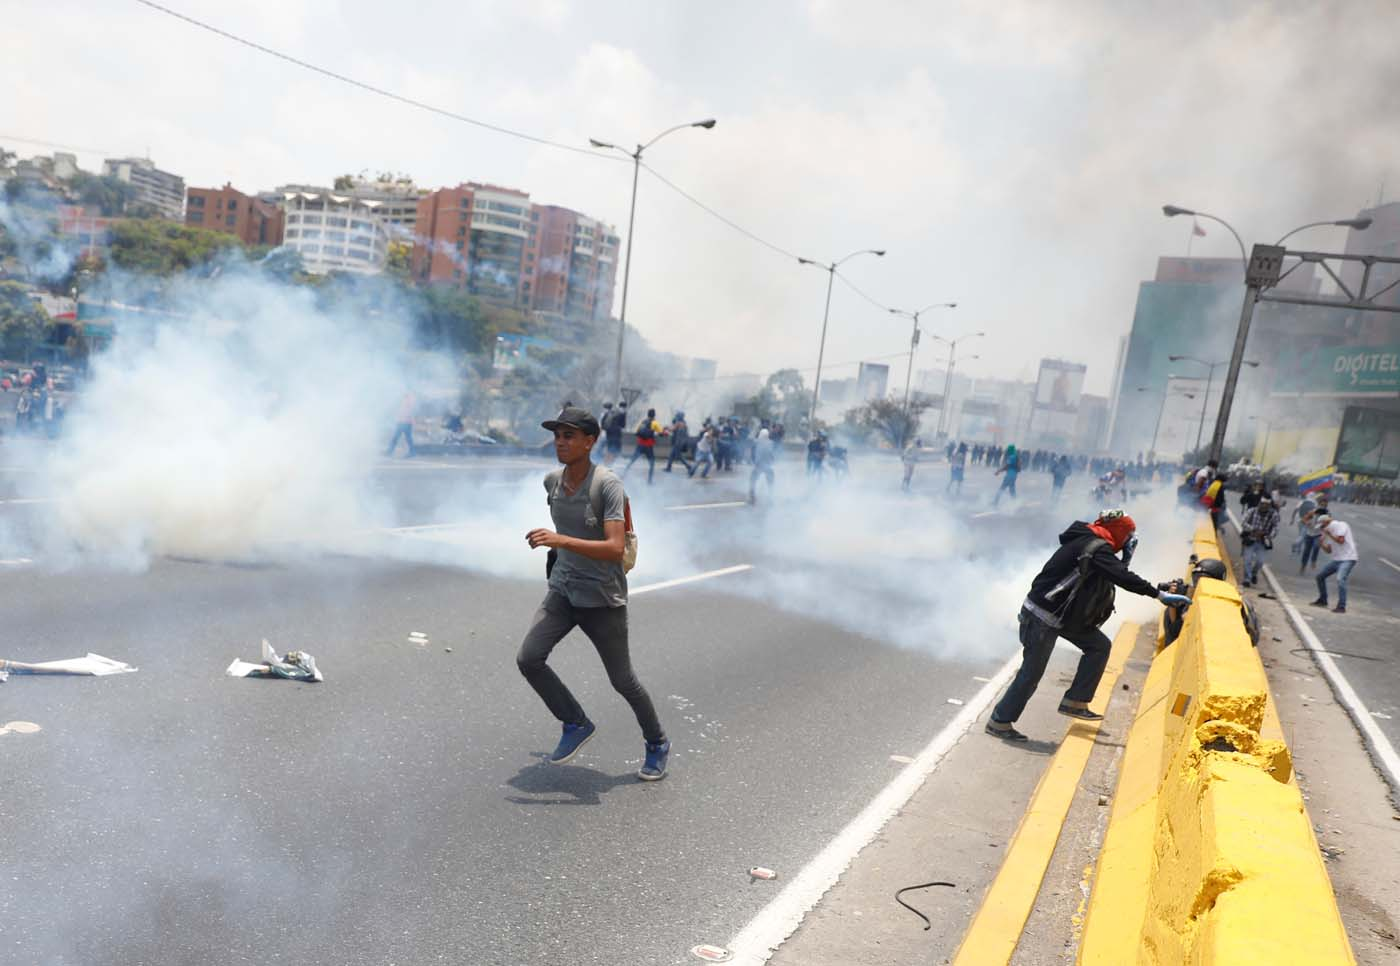 Riot police and demonstrators clash during a rally against Venezuela's President Nicolas Maduro's government in Caracas, Venezuela April 10, 2017. REUTERS/Carlos Garcia Rawlins